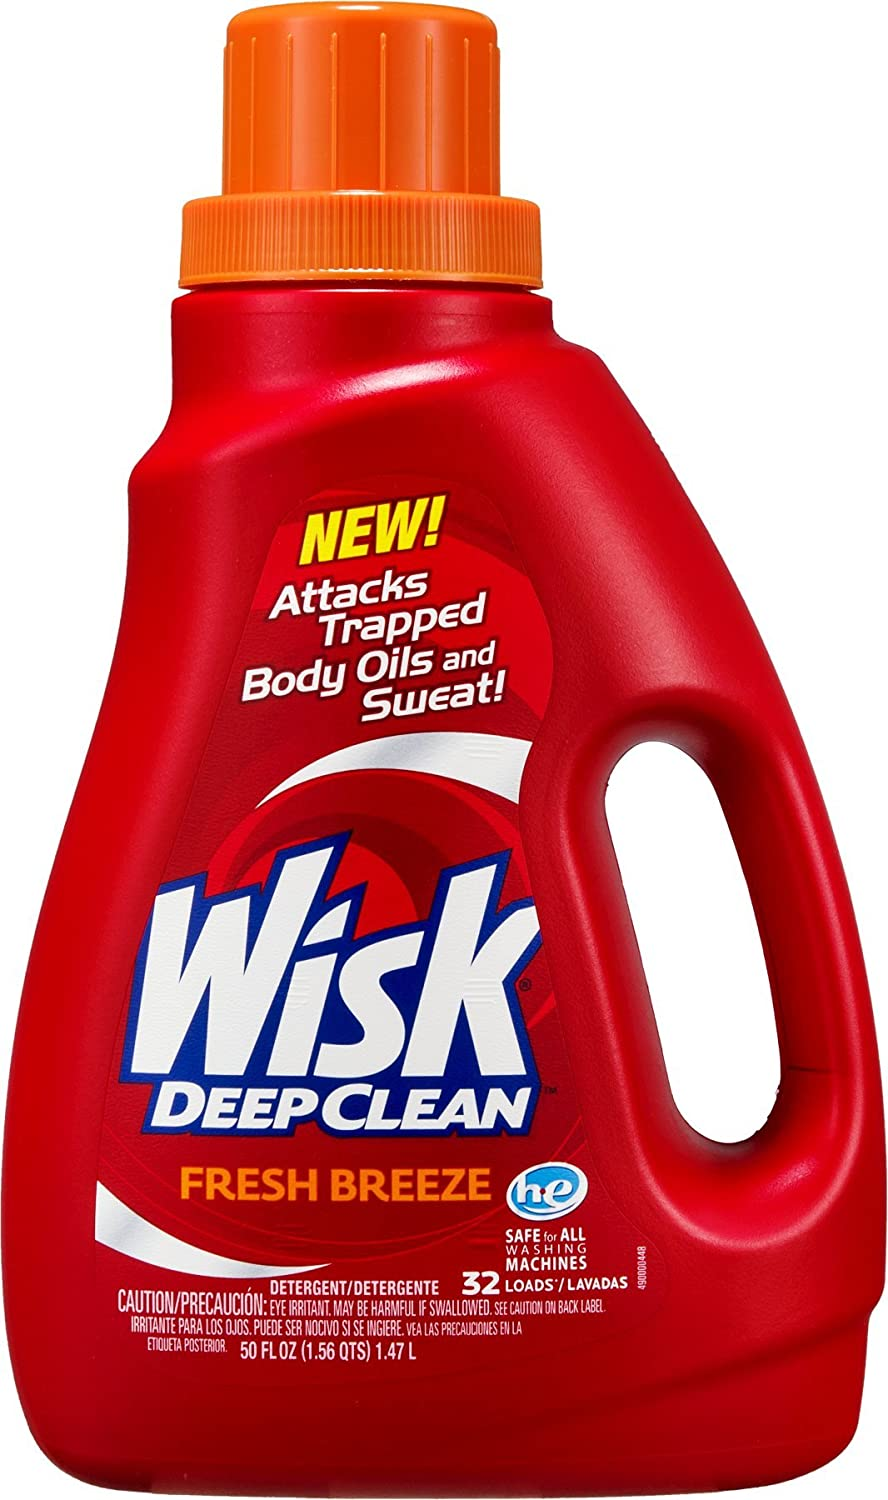 Wisk Deep Clean Fresh Breeze Detergent - 32 Loads